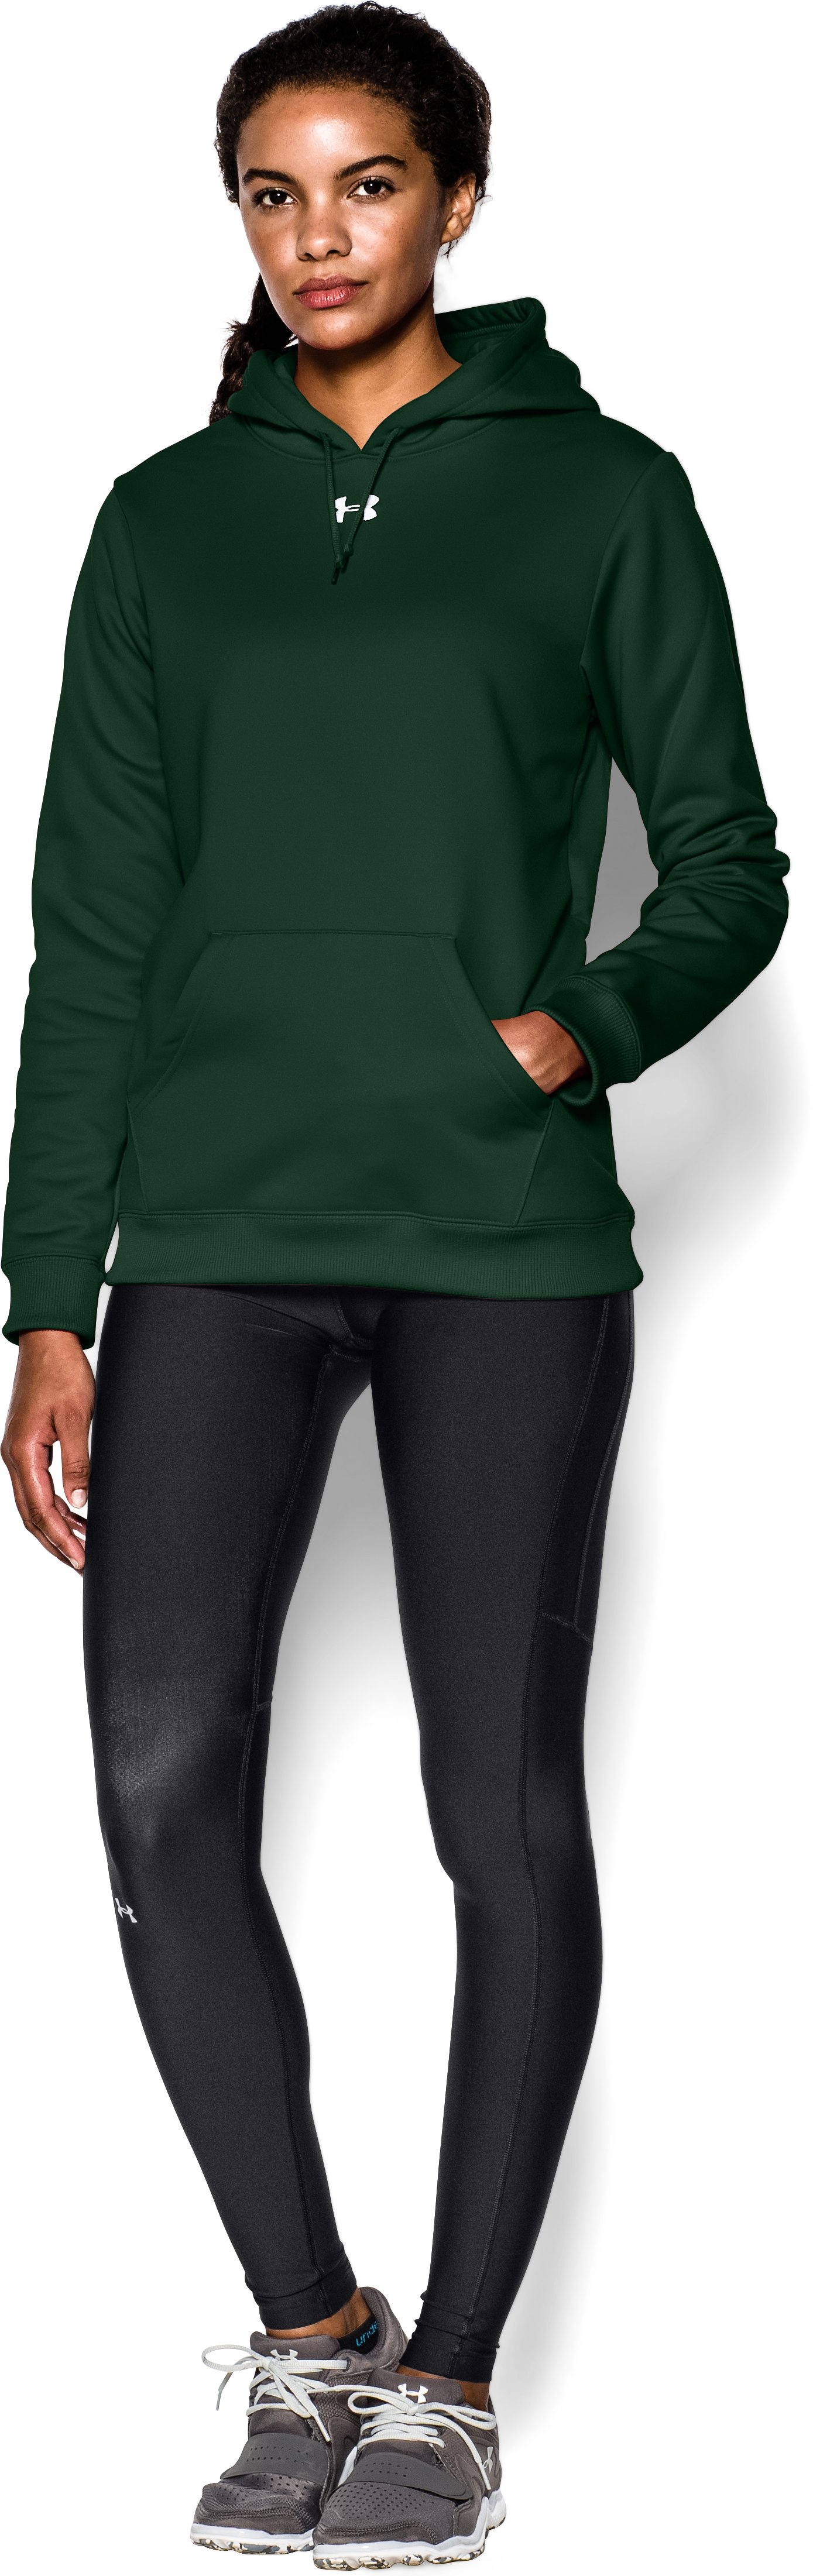 Women's  Armour Fleece® Team Hoodie, Forest Green